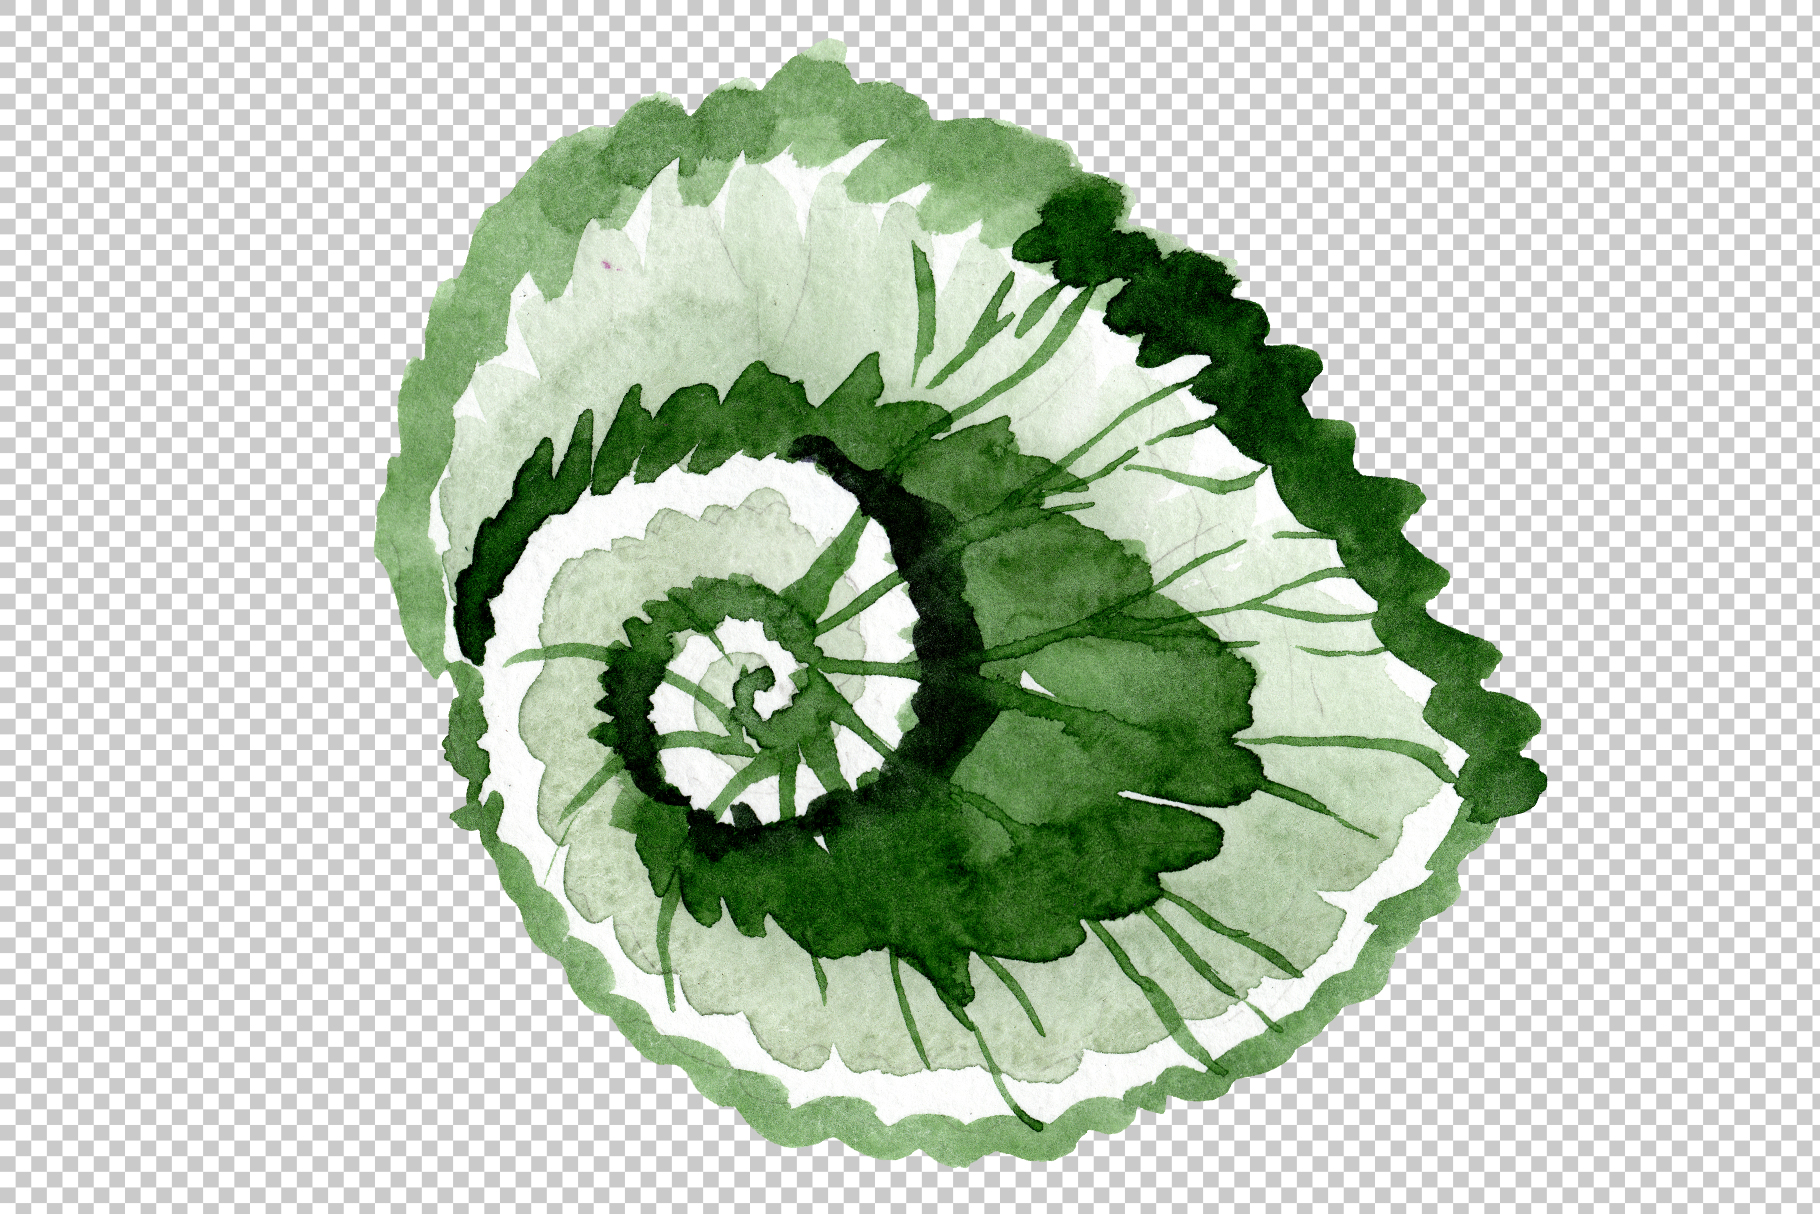 Begonia leaves Watercolor png example image 7